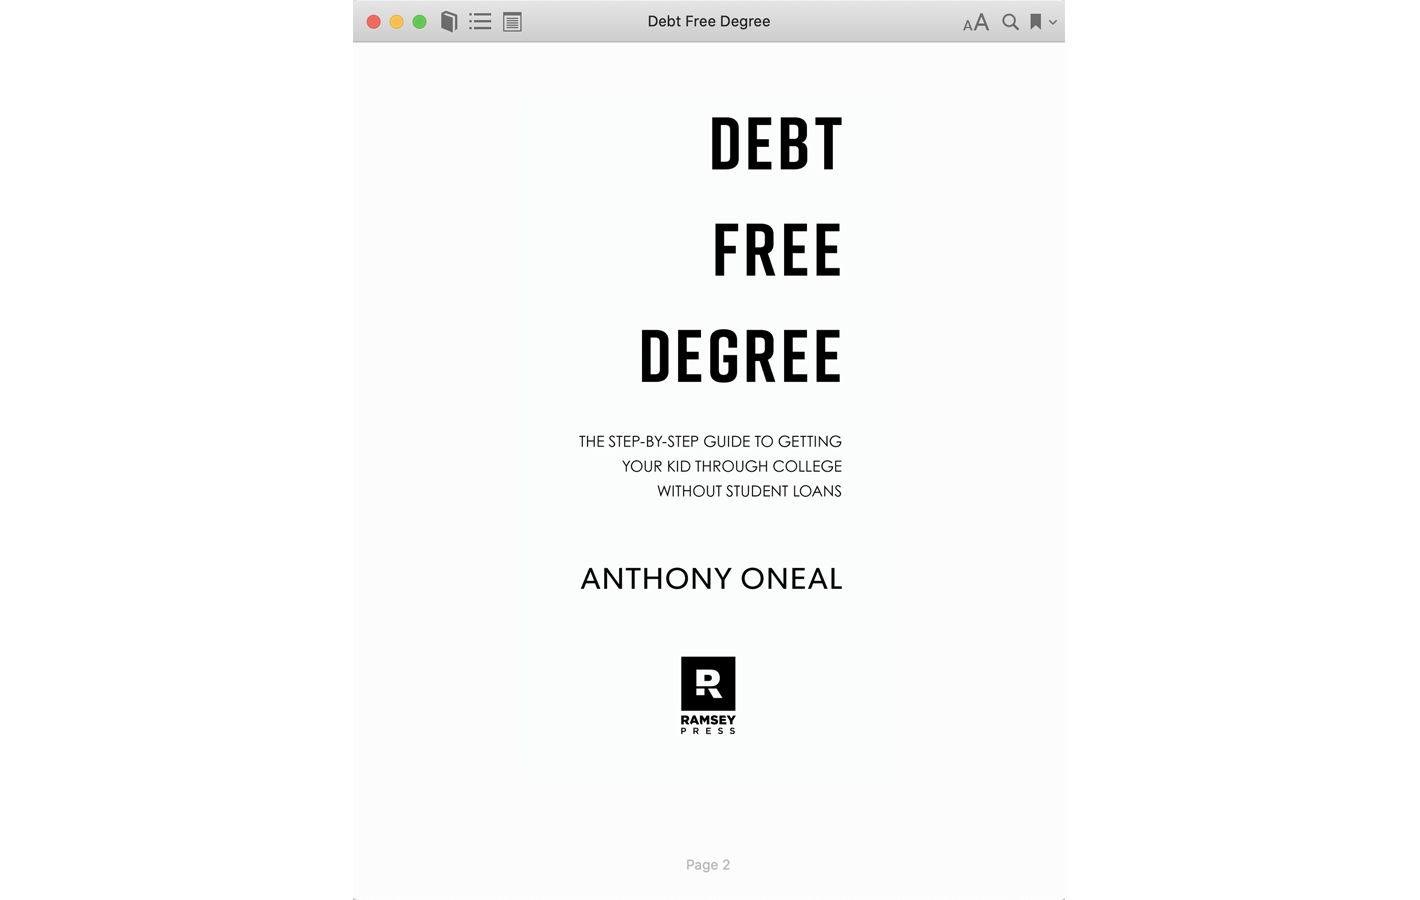 Title page for Debt Free Degree book